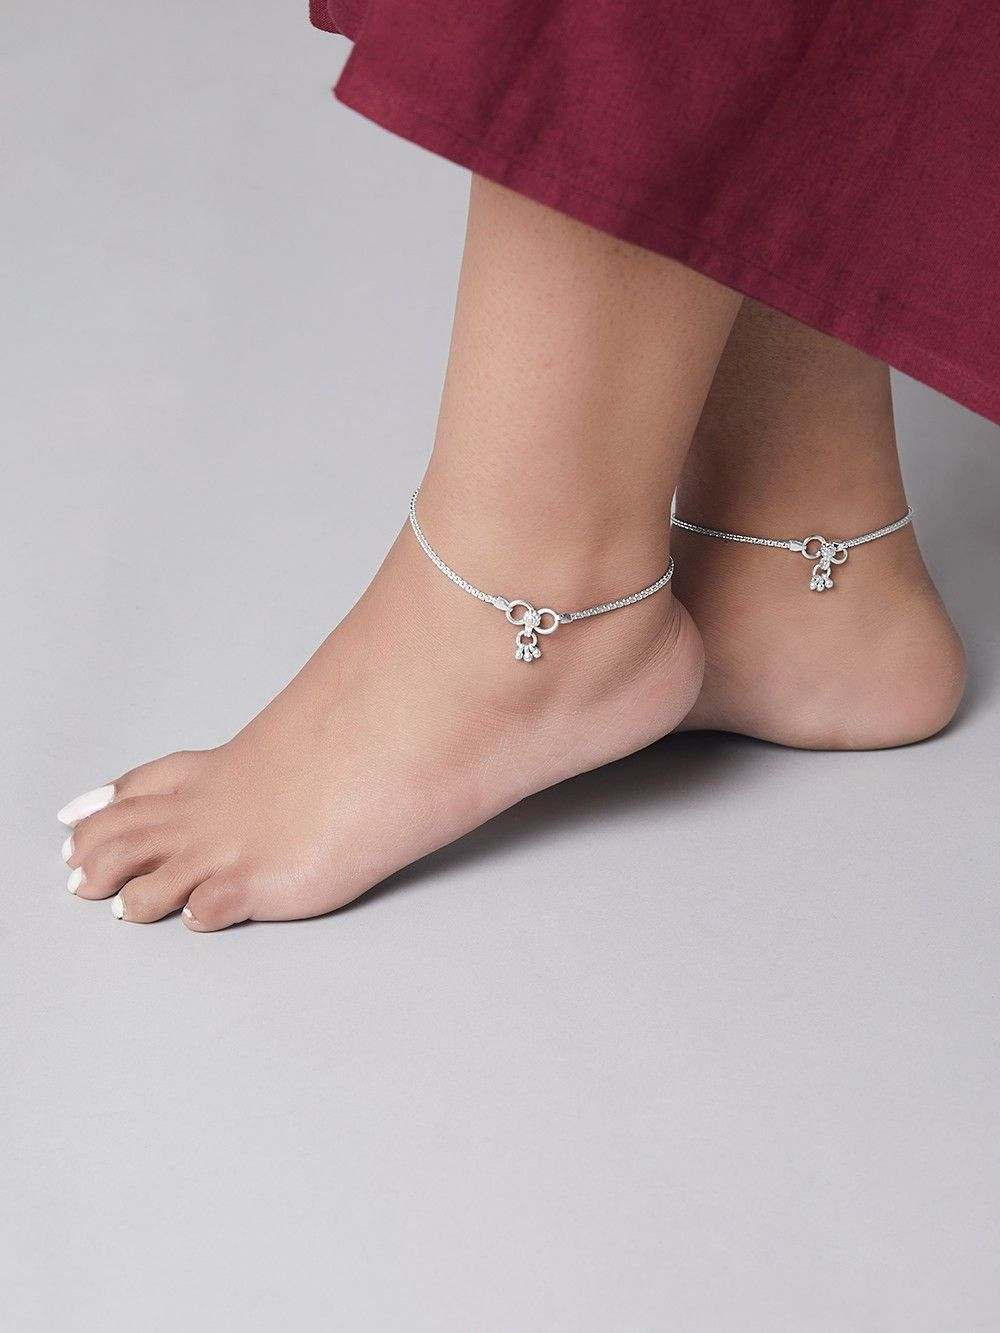 anklets american diamond online product anklet golden